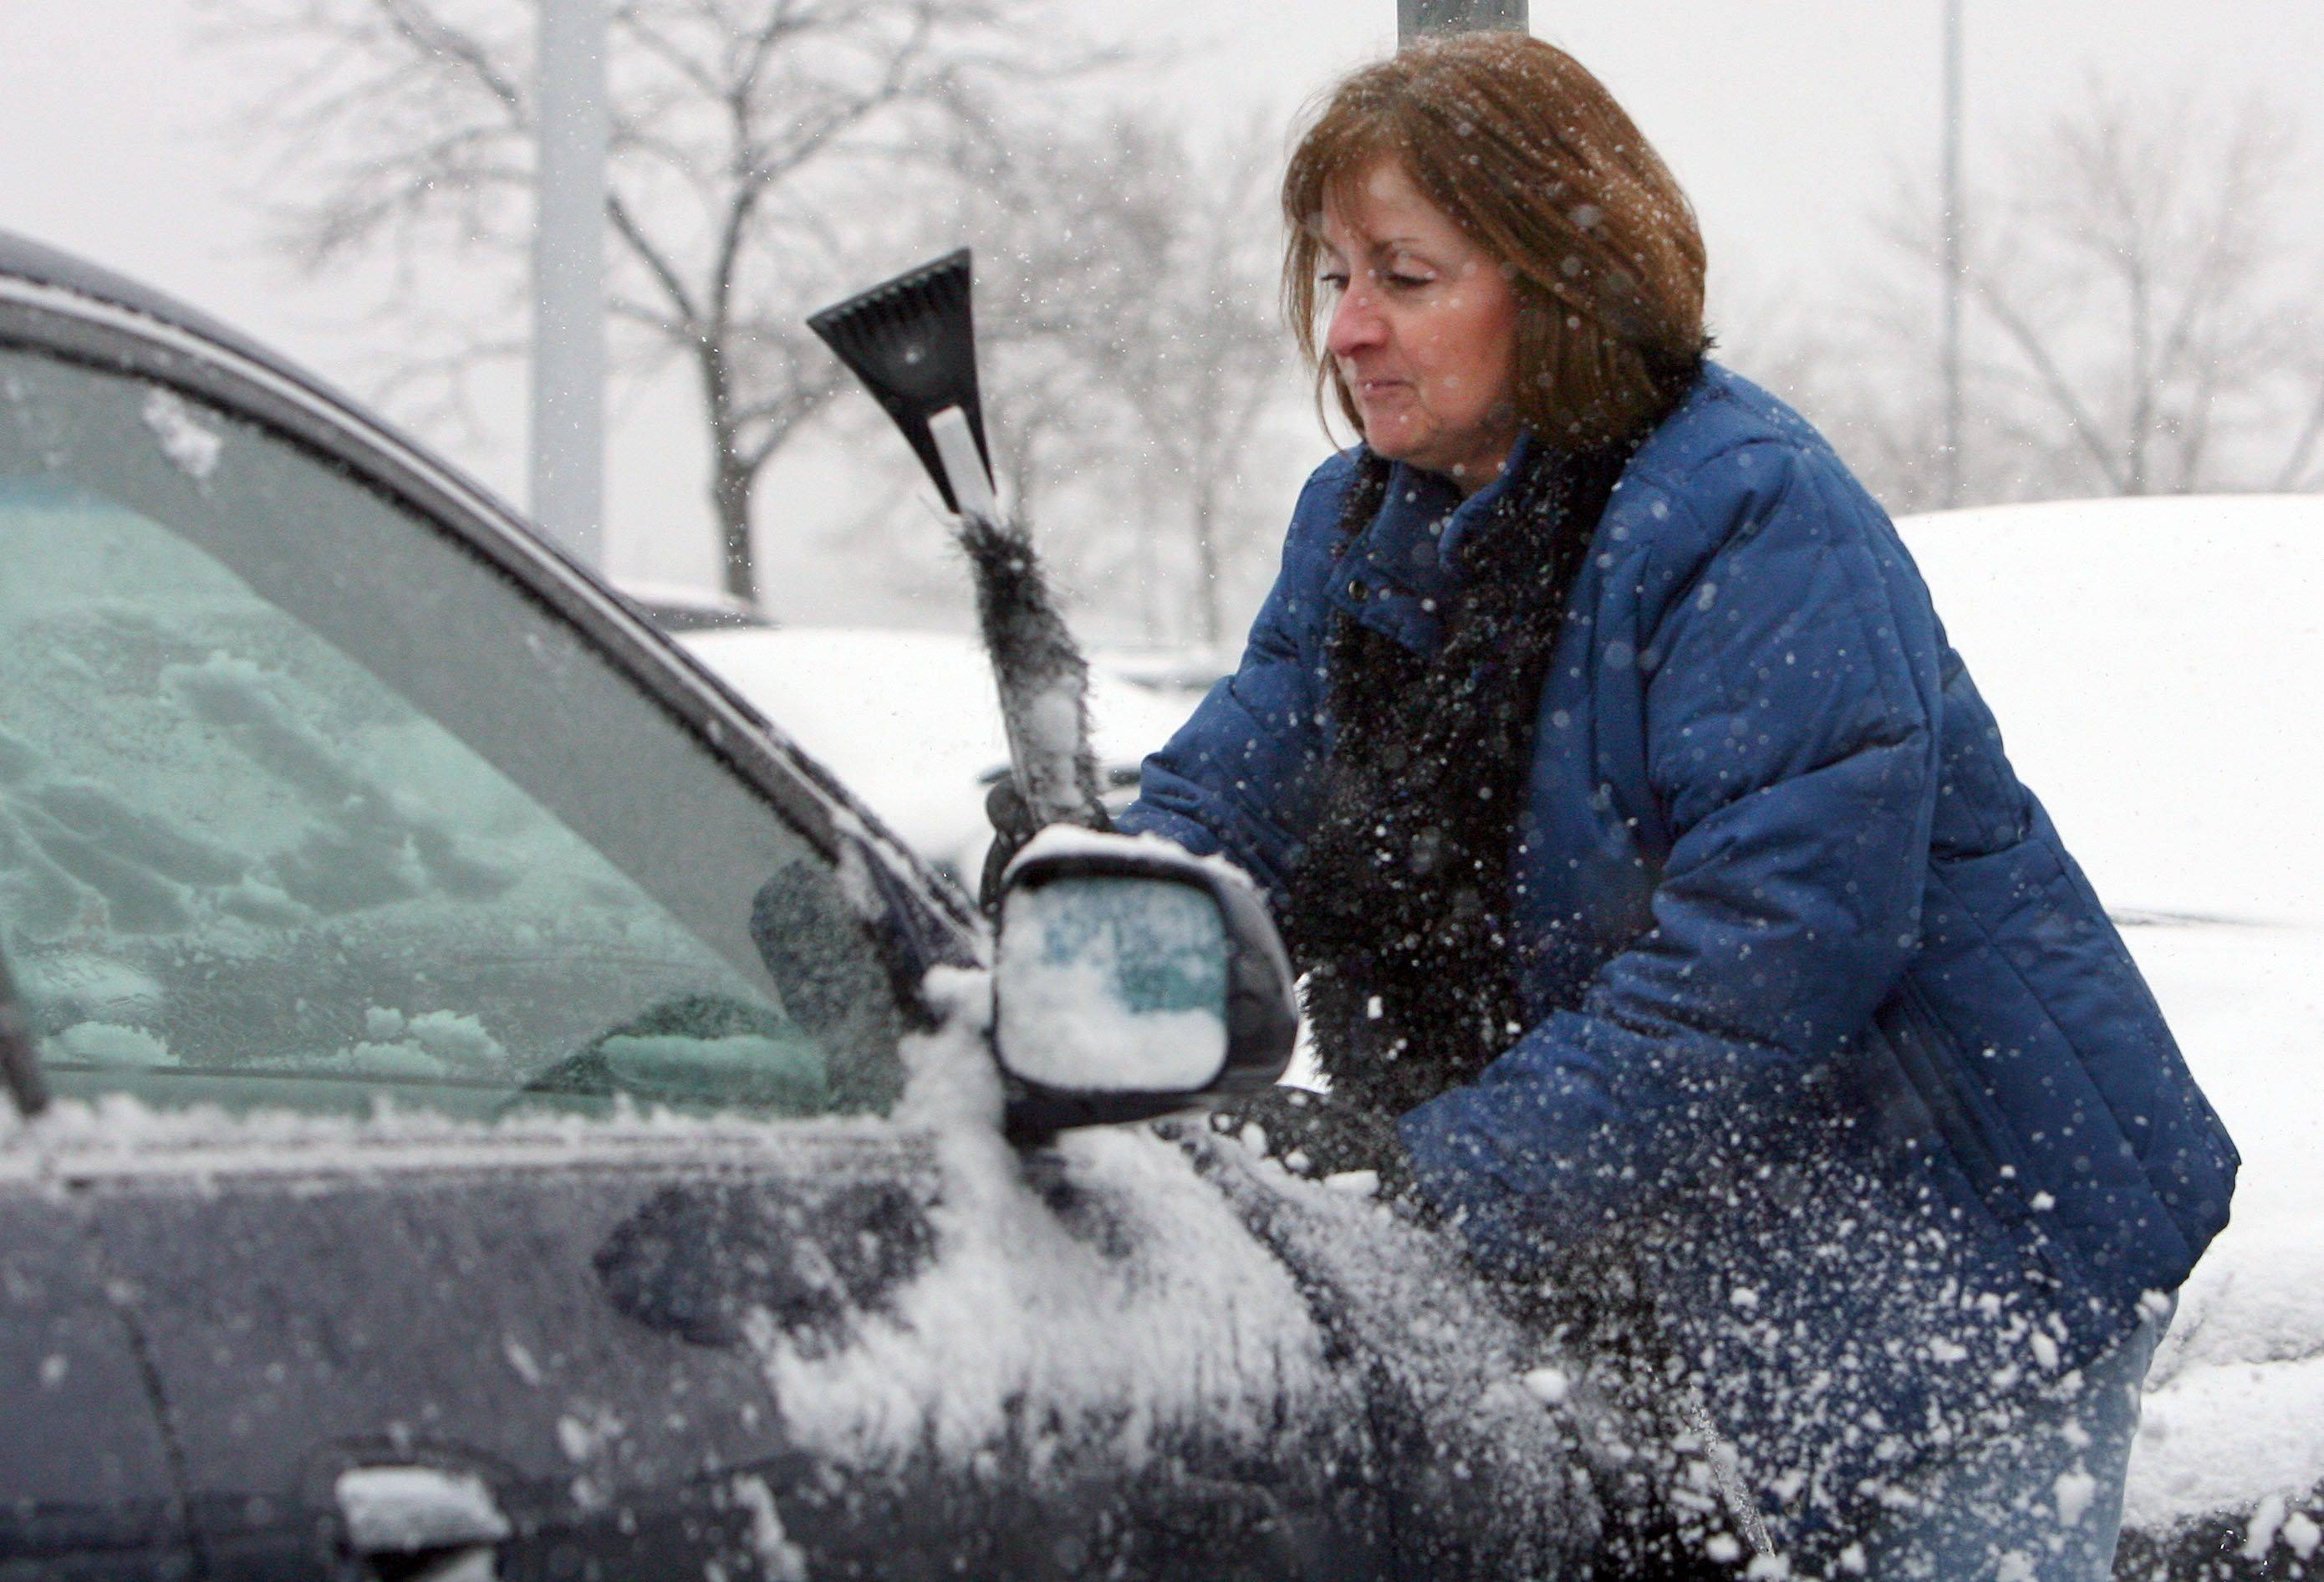 Deb Bresloff of Mundelein cleans off her car at Westfield Hawthorn mall in Vernon Hills.